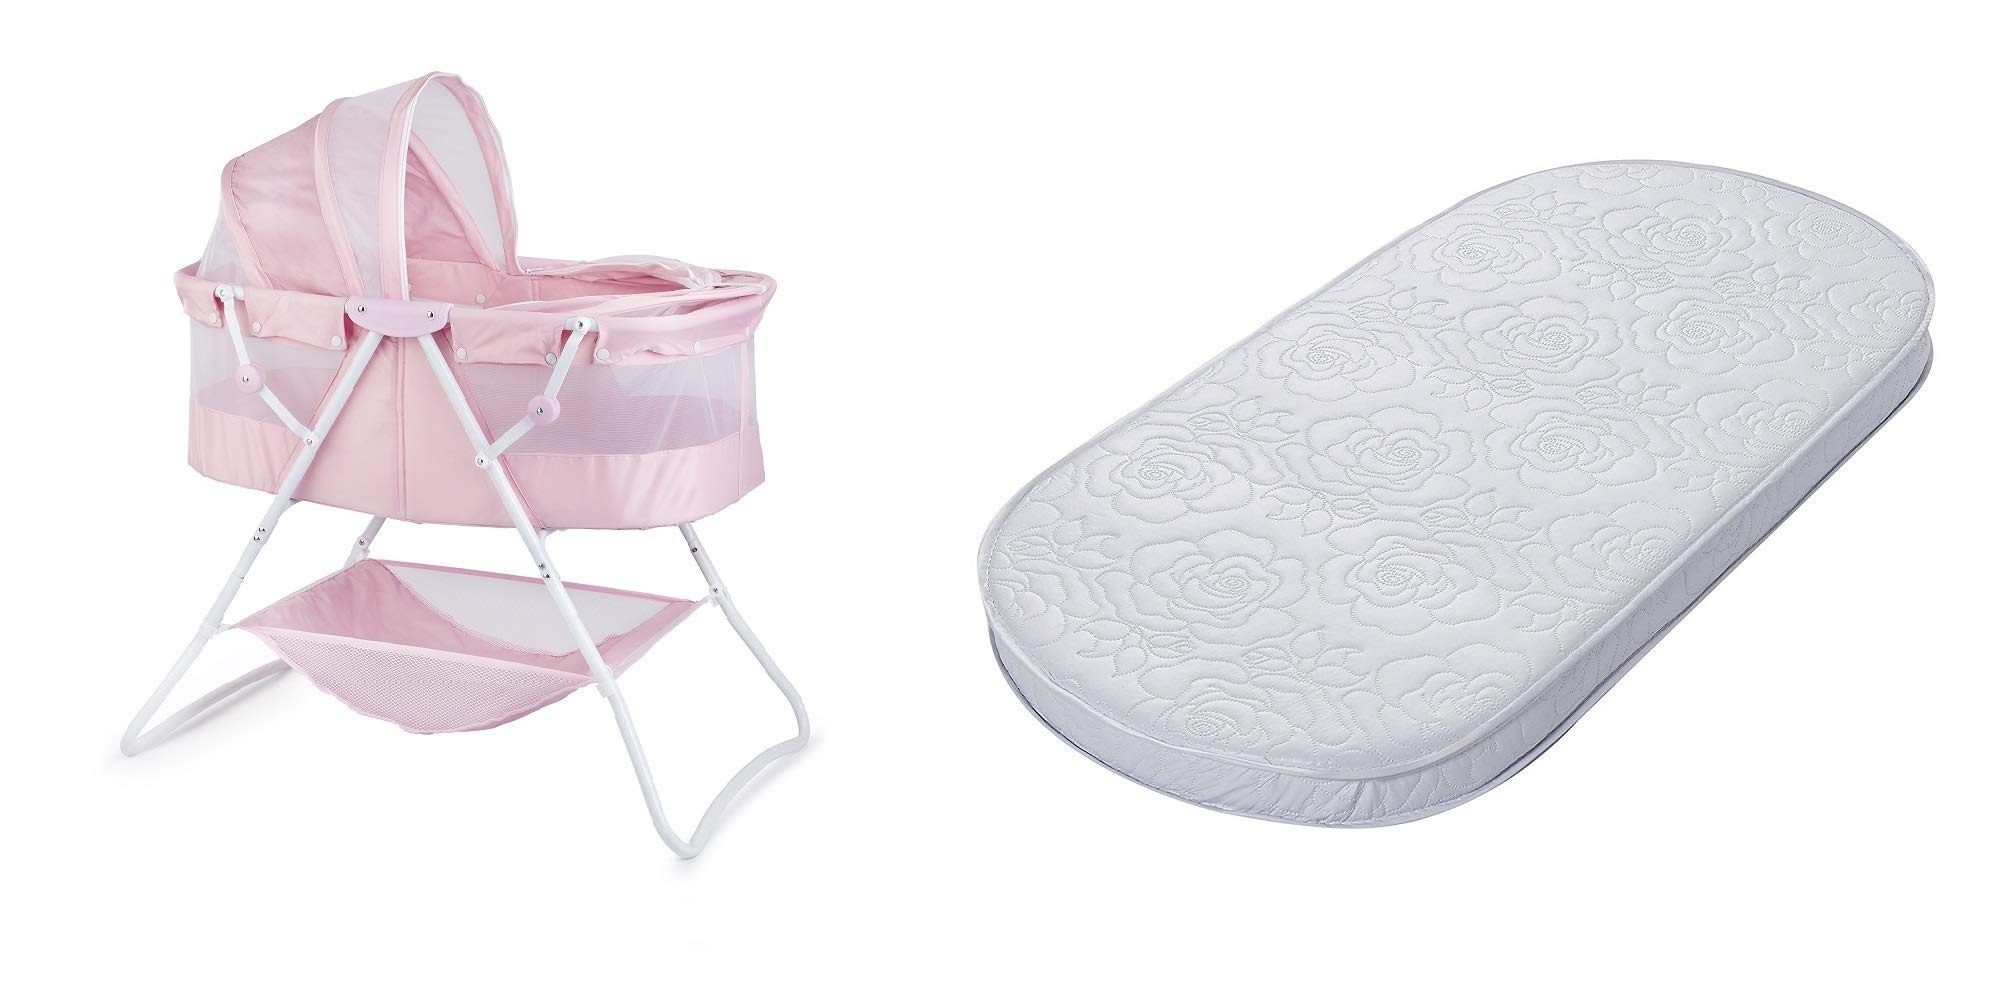 Big Oshi Waterproof Oval Bassinet Mattress and Portable Indoor/Outdoor Bassinet, Pink by Big Oshi